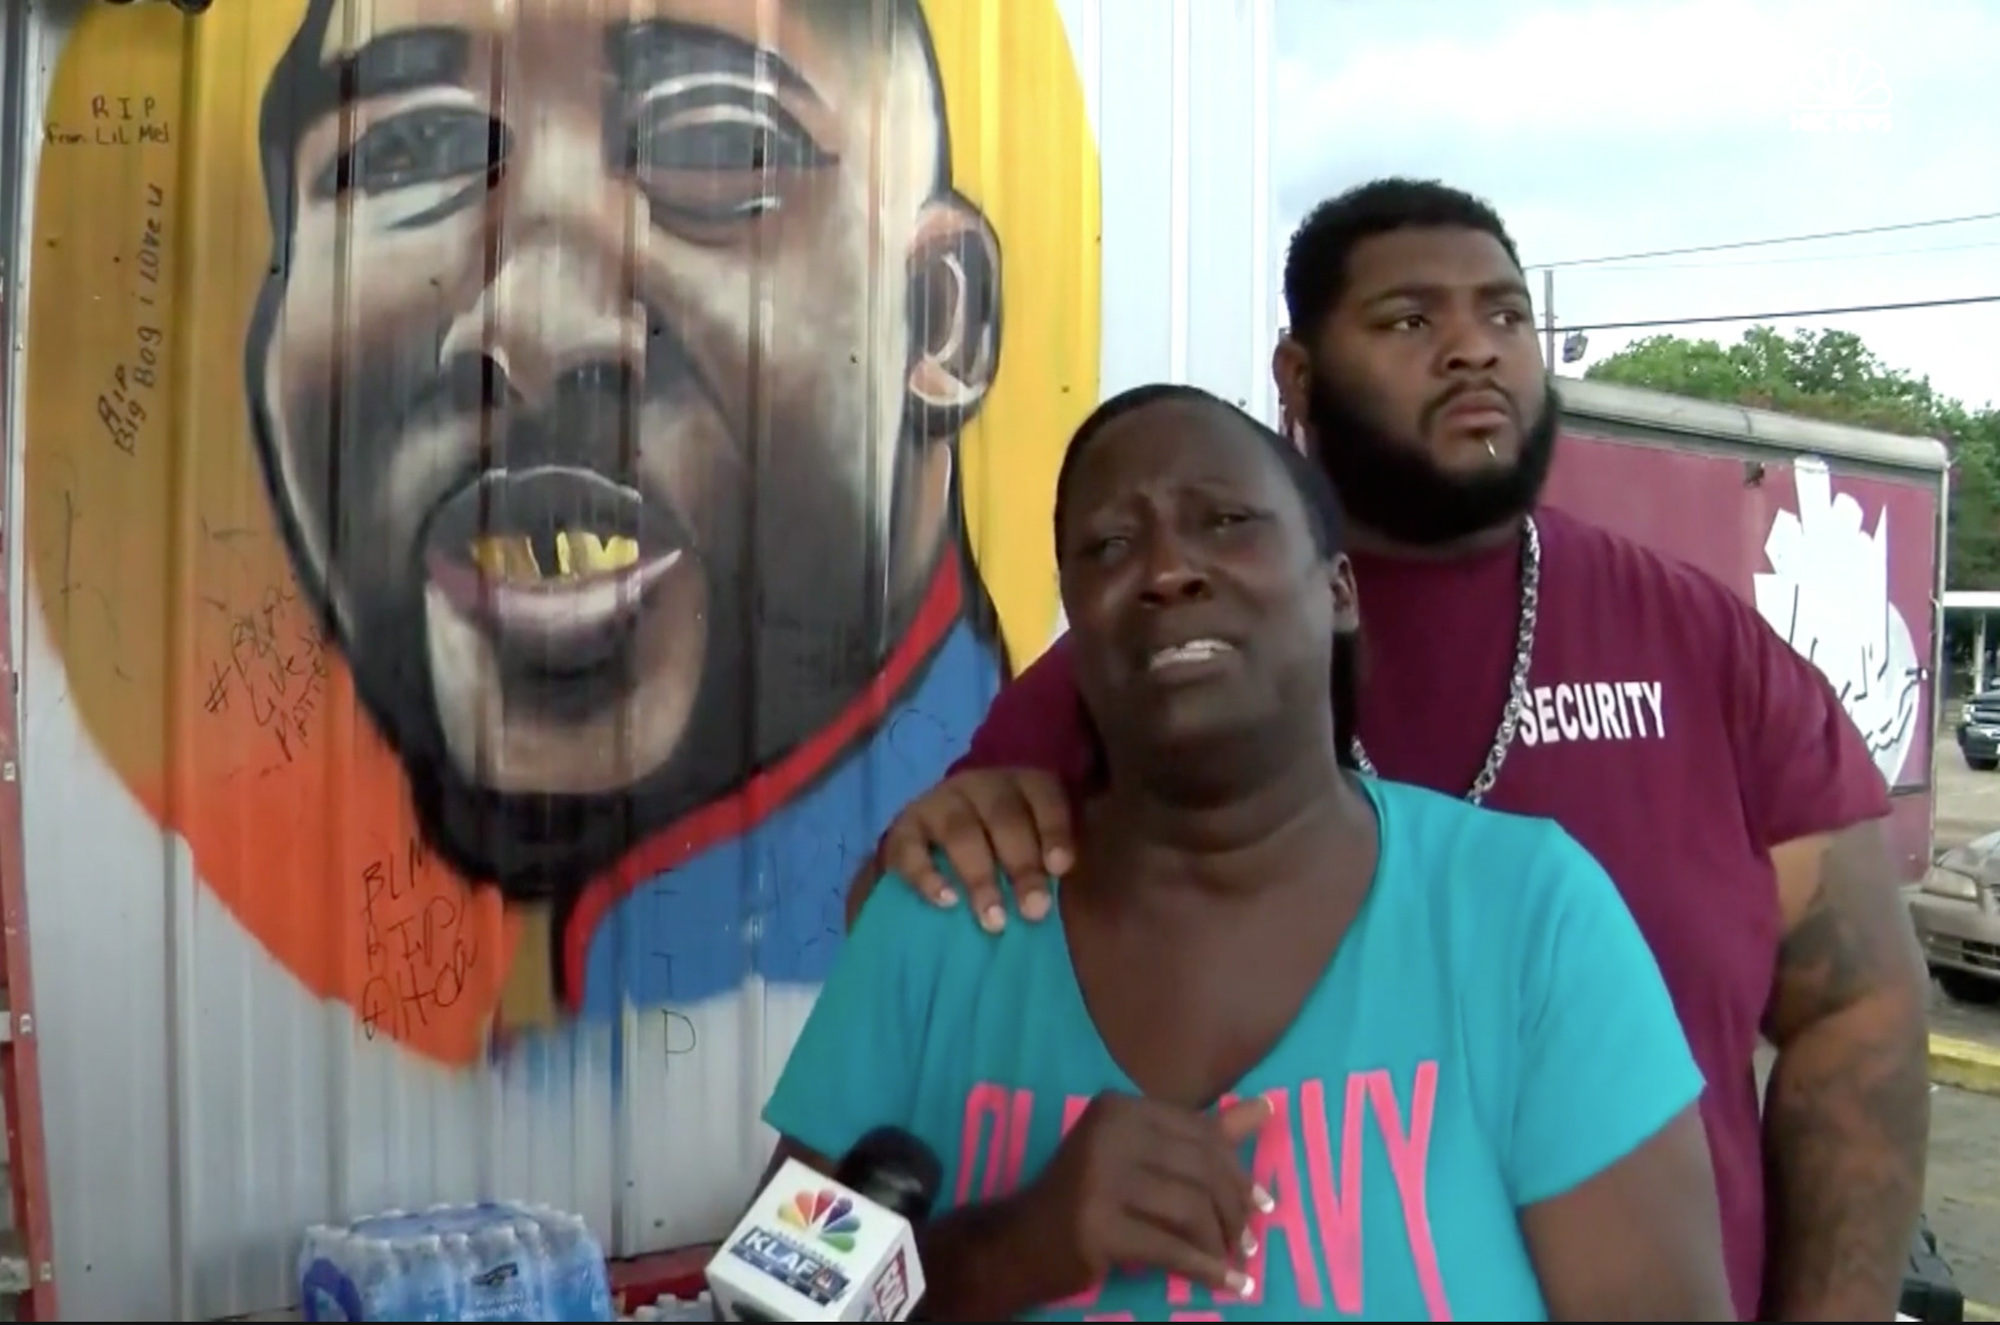 Alton Sterling's aunt, Veda Washington-Abusaleh, makes an emotional plea to end  bloodshed  after the deaths of three Baton Rouge police officers.